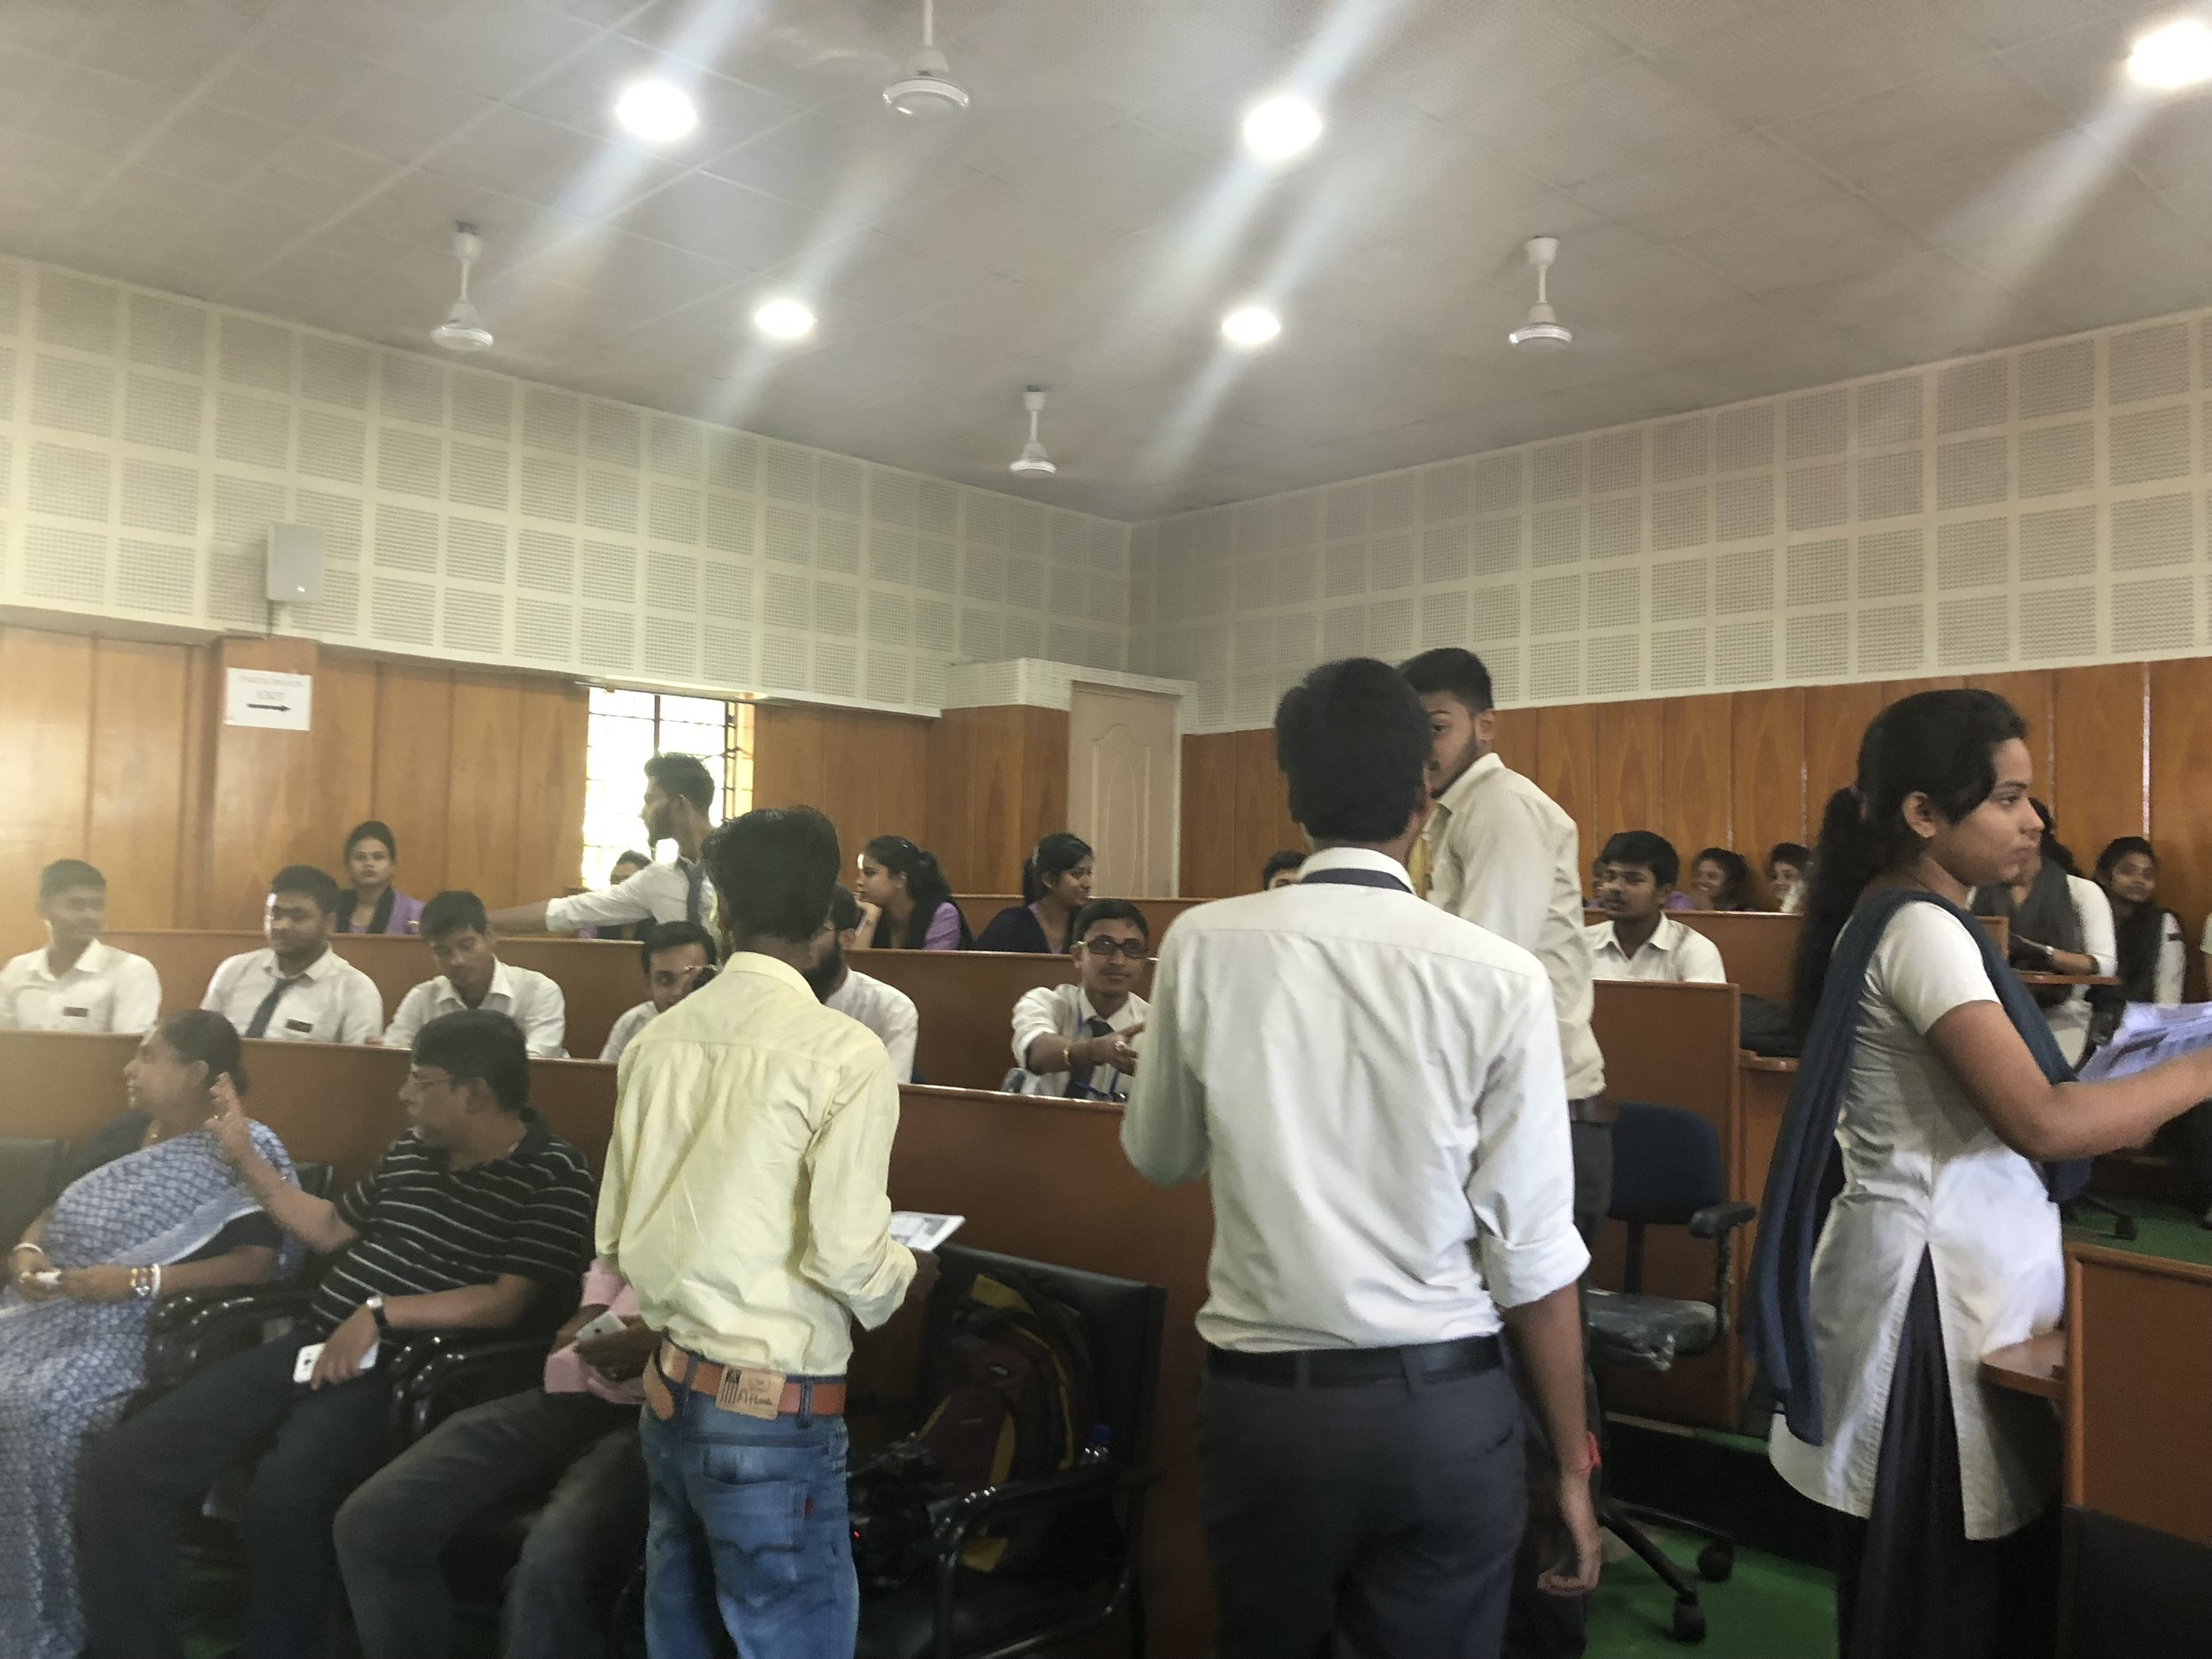 Session 1: Extremely thankful to the Students of Cachar College for your gracious presence and your interest and interactions. Breast Self exam printouts accepted very nicely by the young generation and they will spread it in their respective households and network.